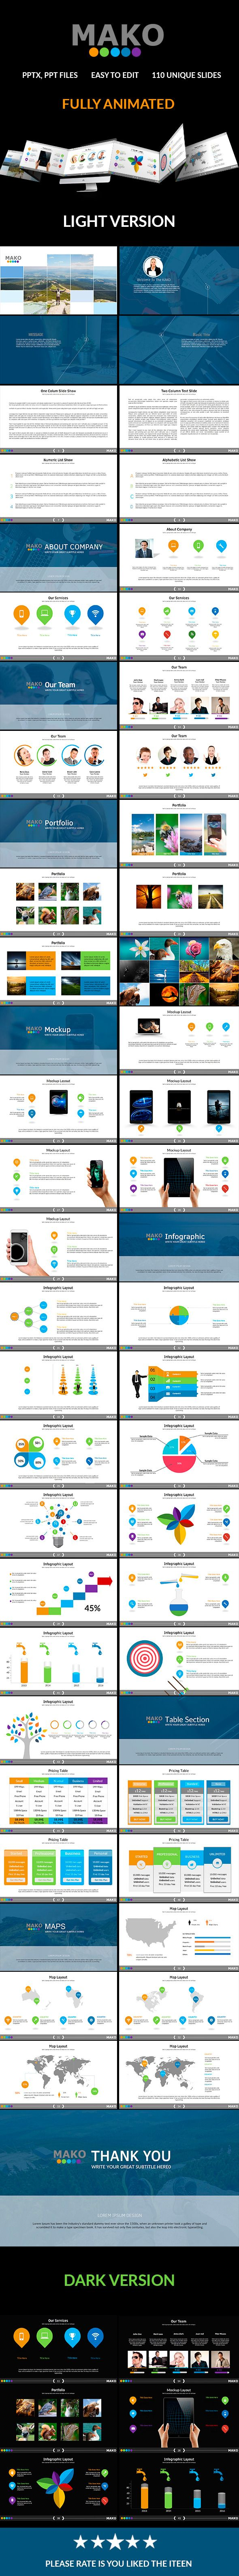 Mako Powerpoint Presentation (PowerPoint Templates)